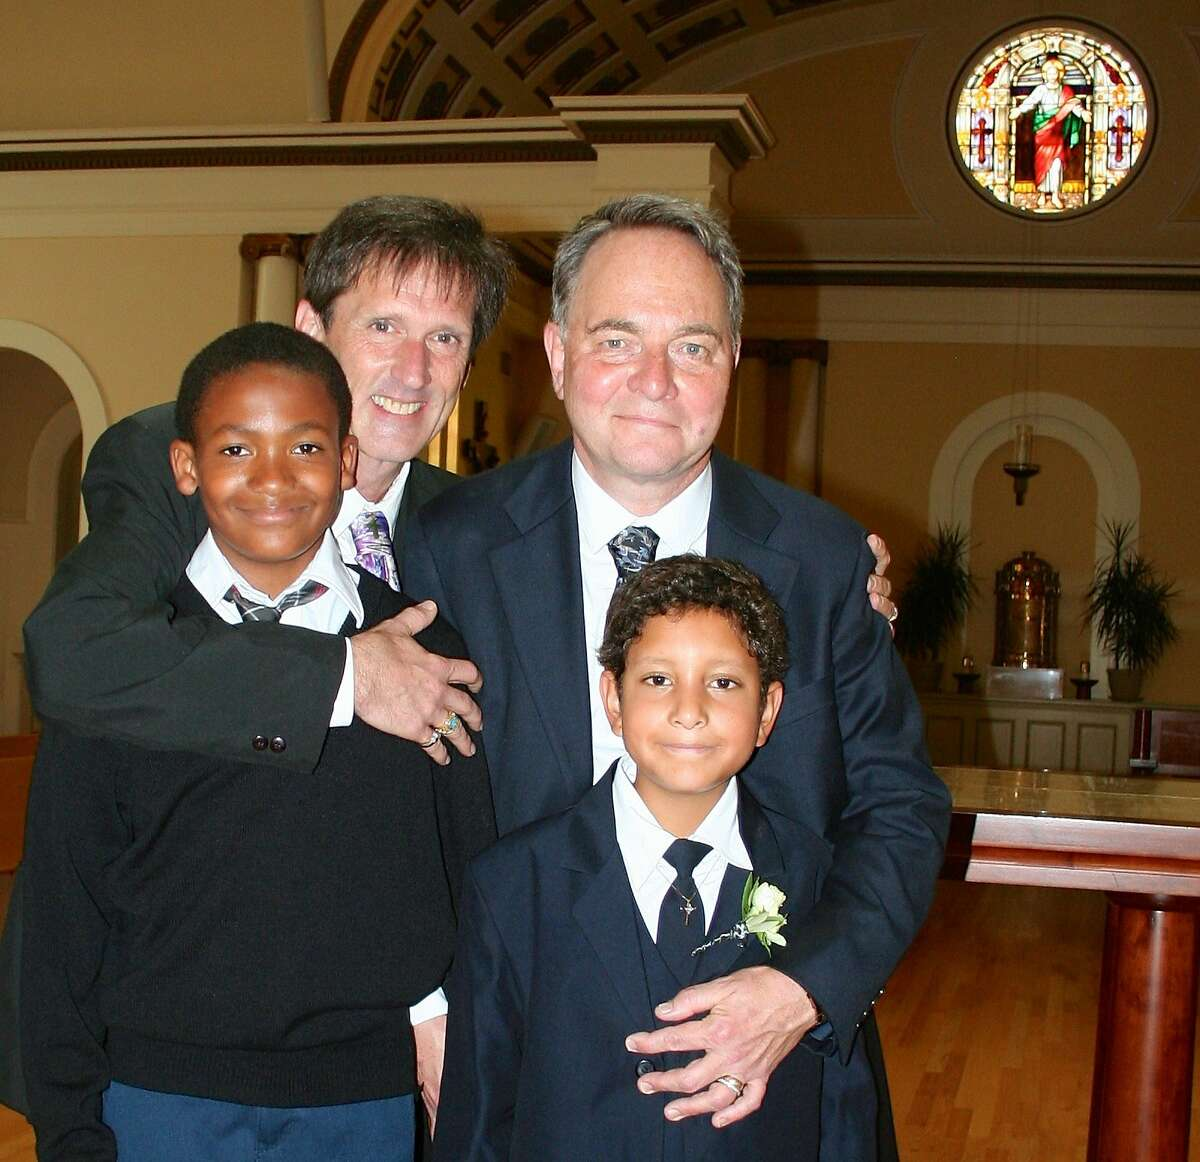 The Fisher-Paulsons celebrate Aidan's First Communion at Most Holy Redeemer Church in San Francisco on August 31, 2014.